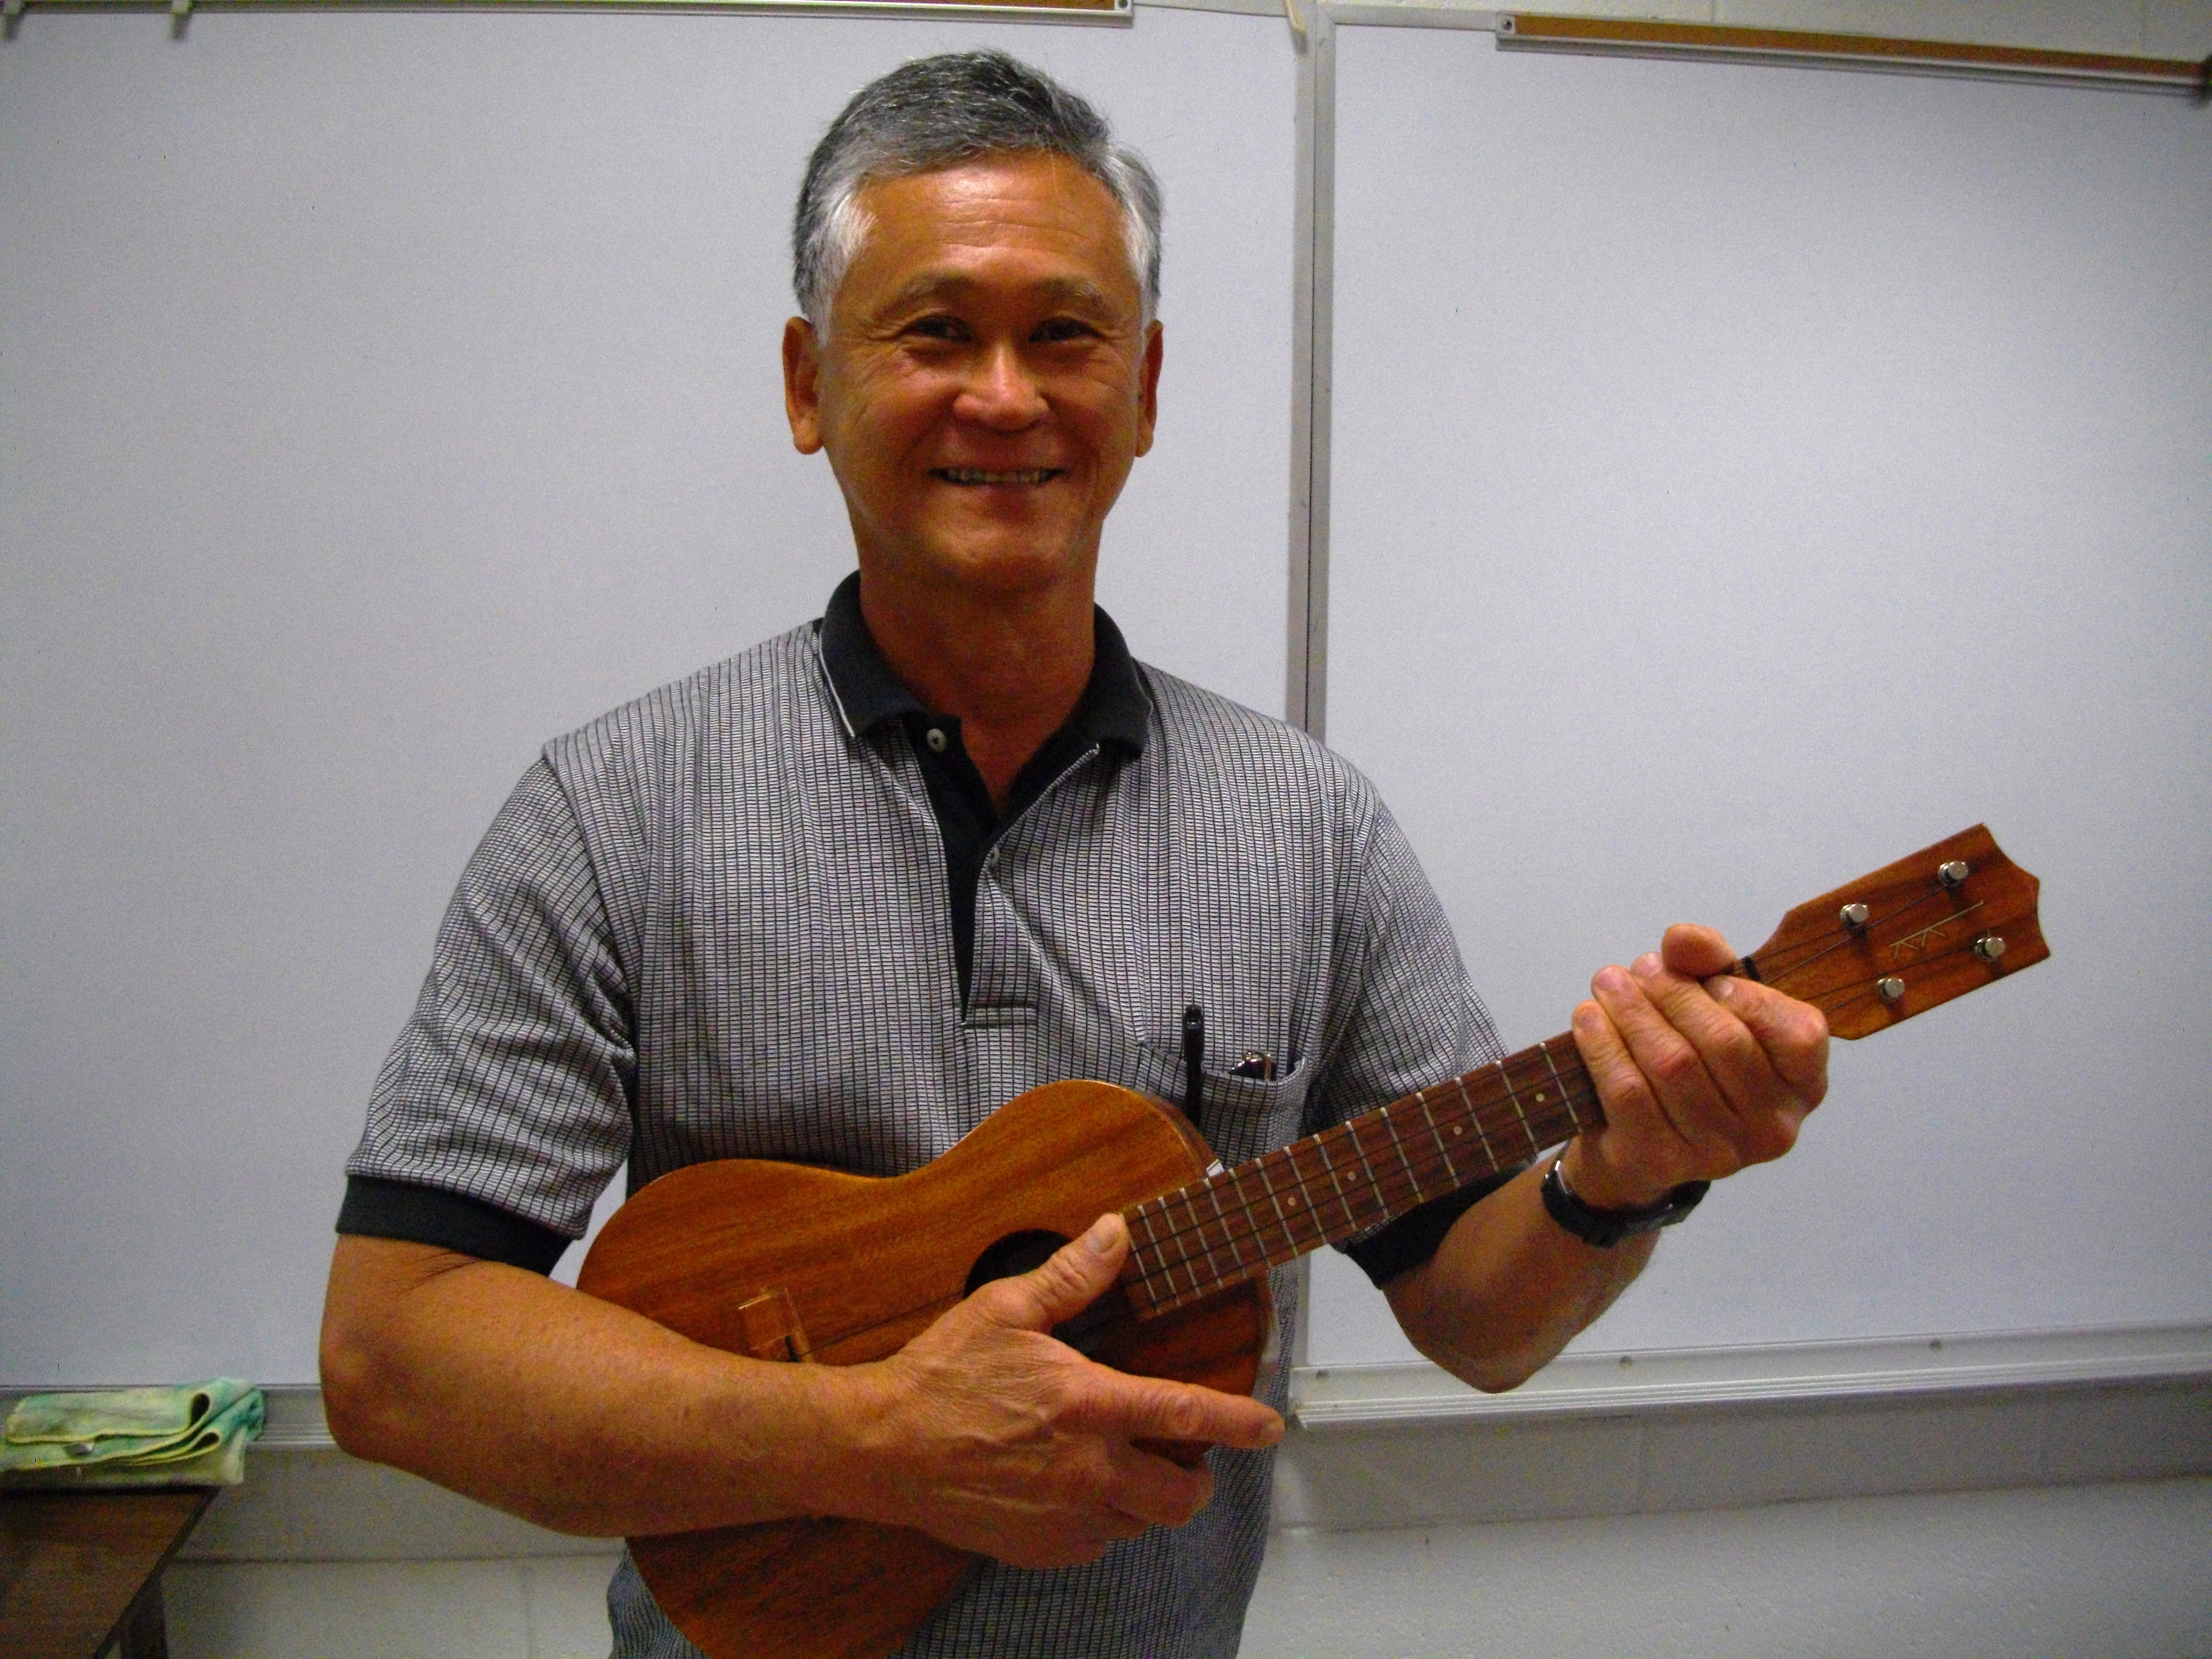 Allen plays ukulele with Mele